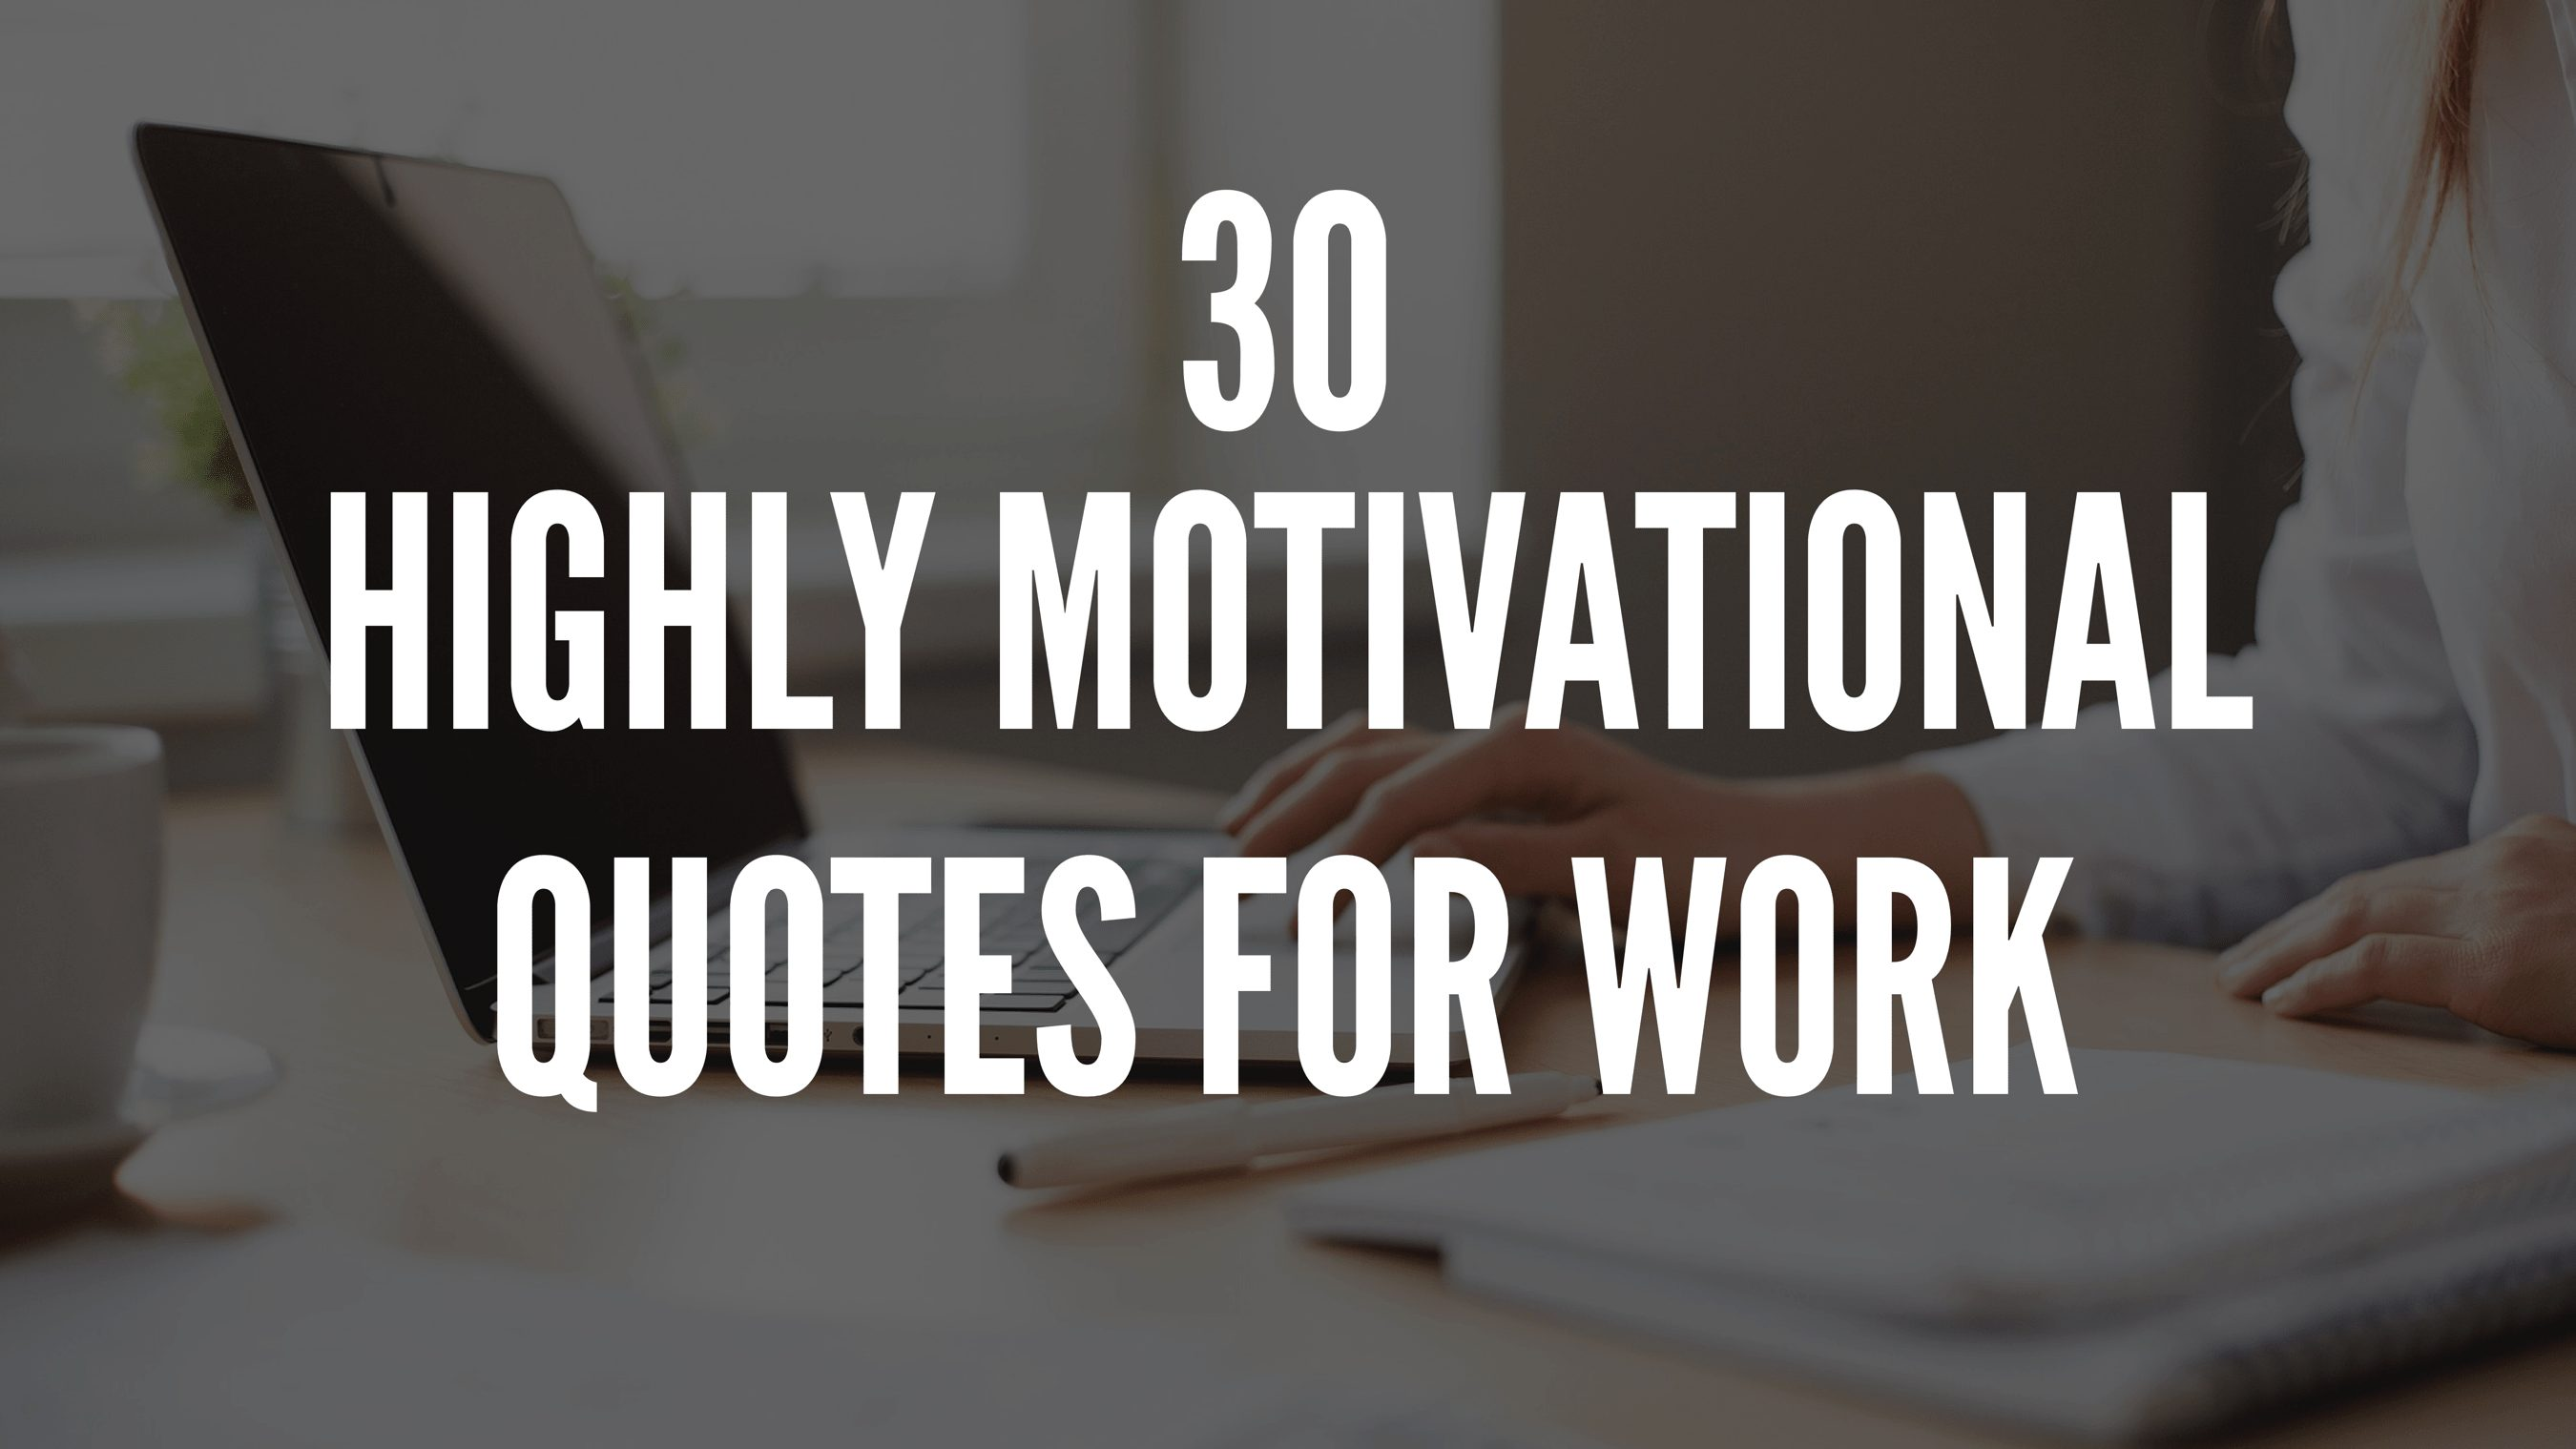 Motivational Quotes For Work: Amazing Quotes On Flipboard By Damien Thomas